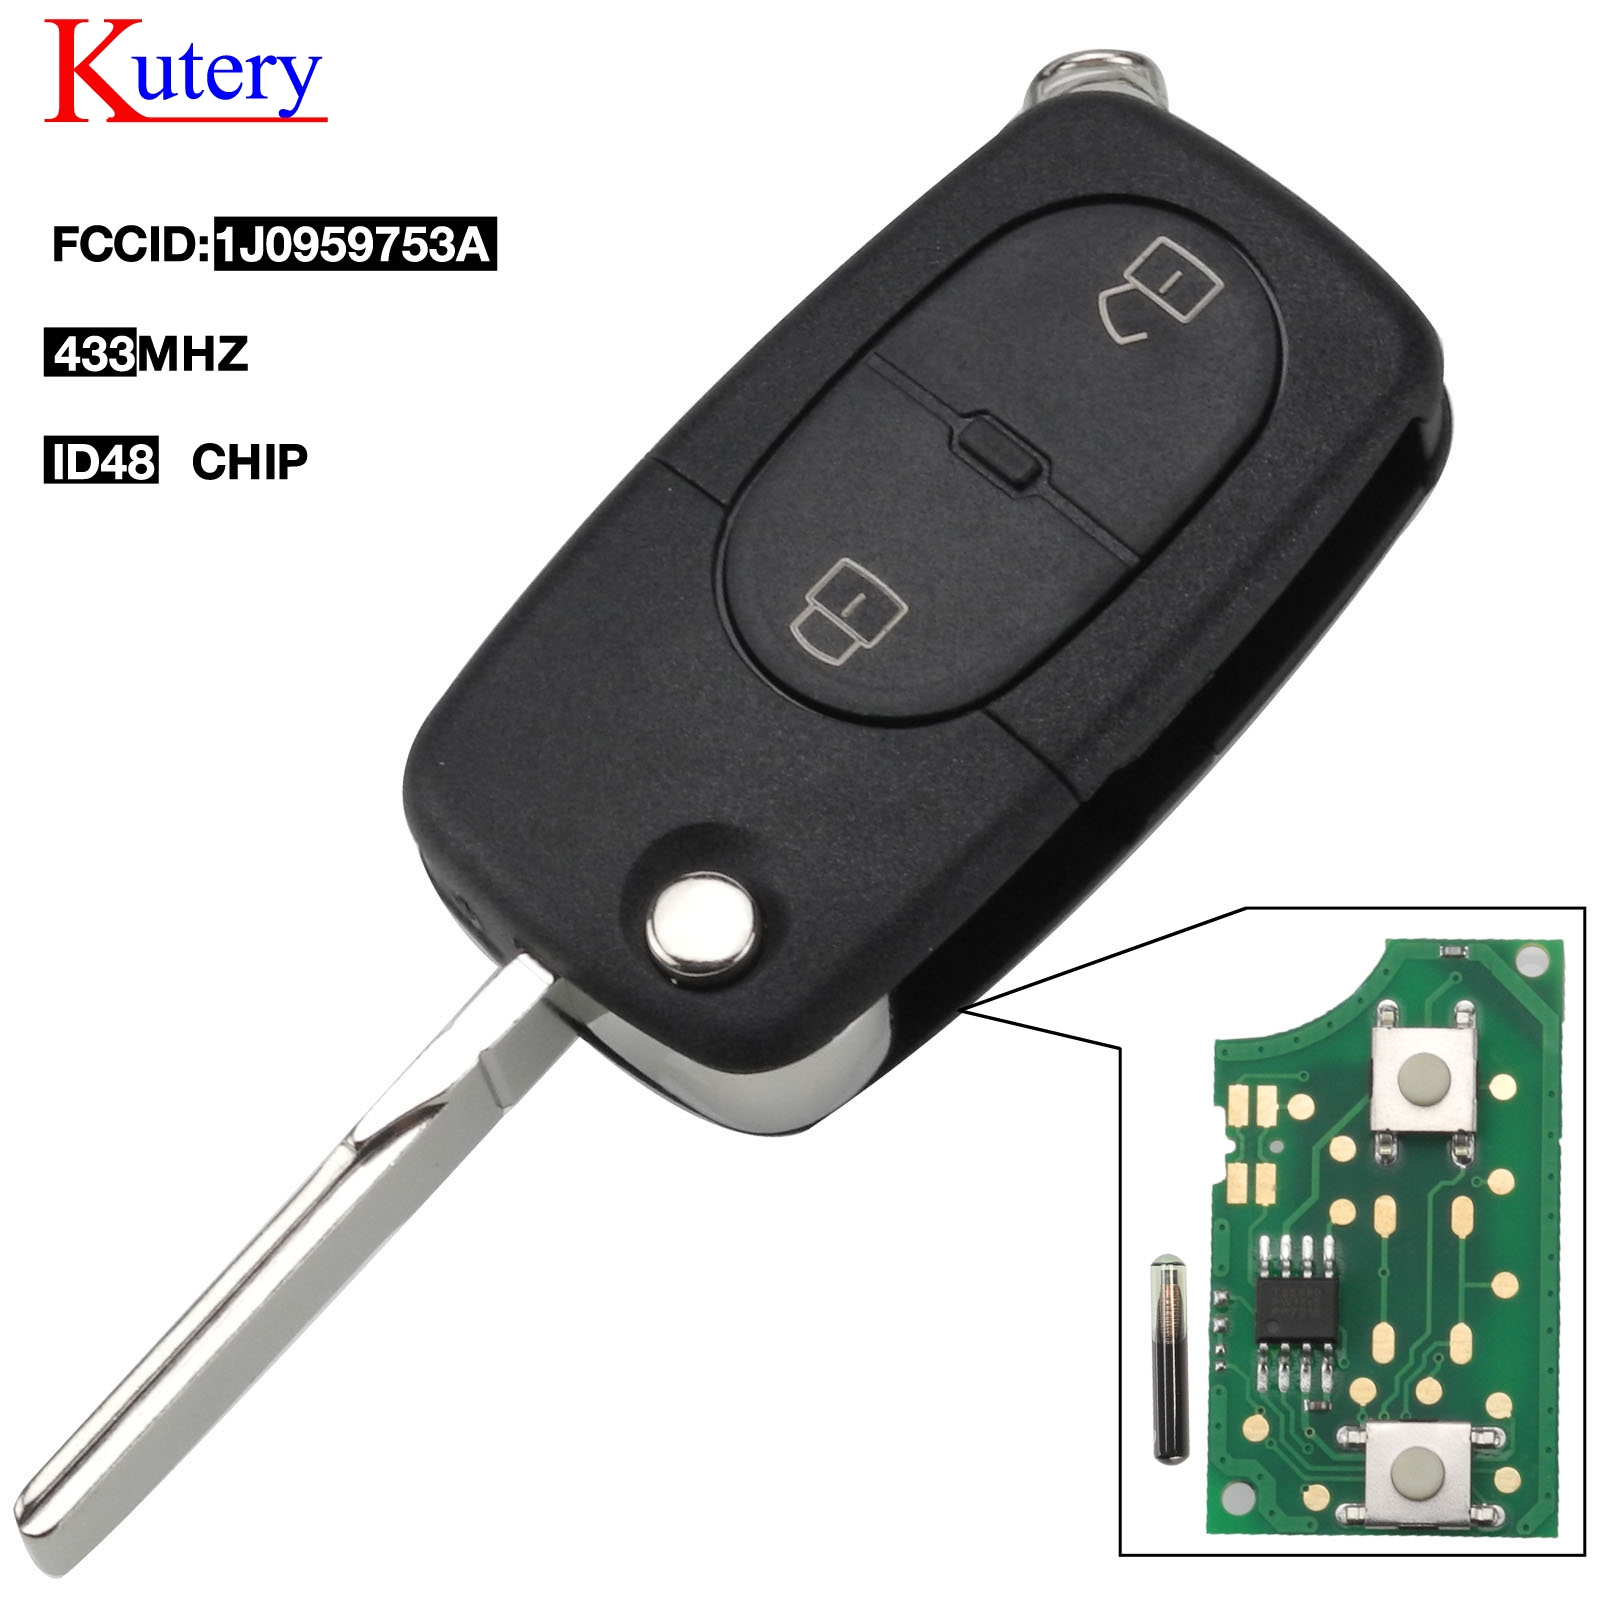 kutery Car Remote Control 1J0959753A  Key 2 Button Smart Transmitter 433Mhz For VW Volkswagen Passat Golf MK4 1J0 959 753 A|Car Key|Automobiles & Motorcycles - title=